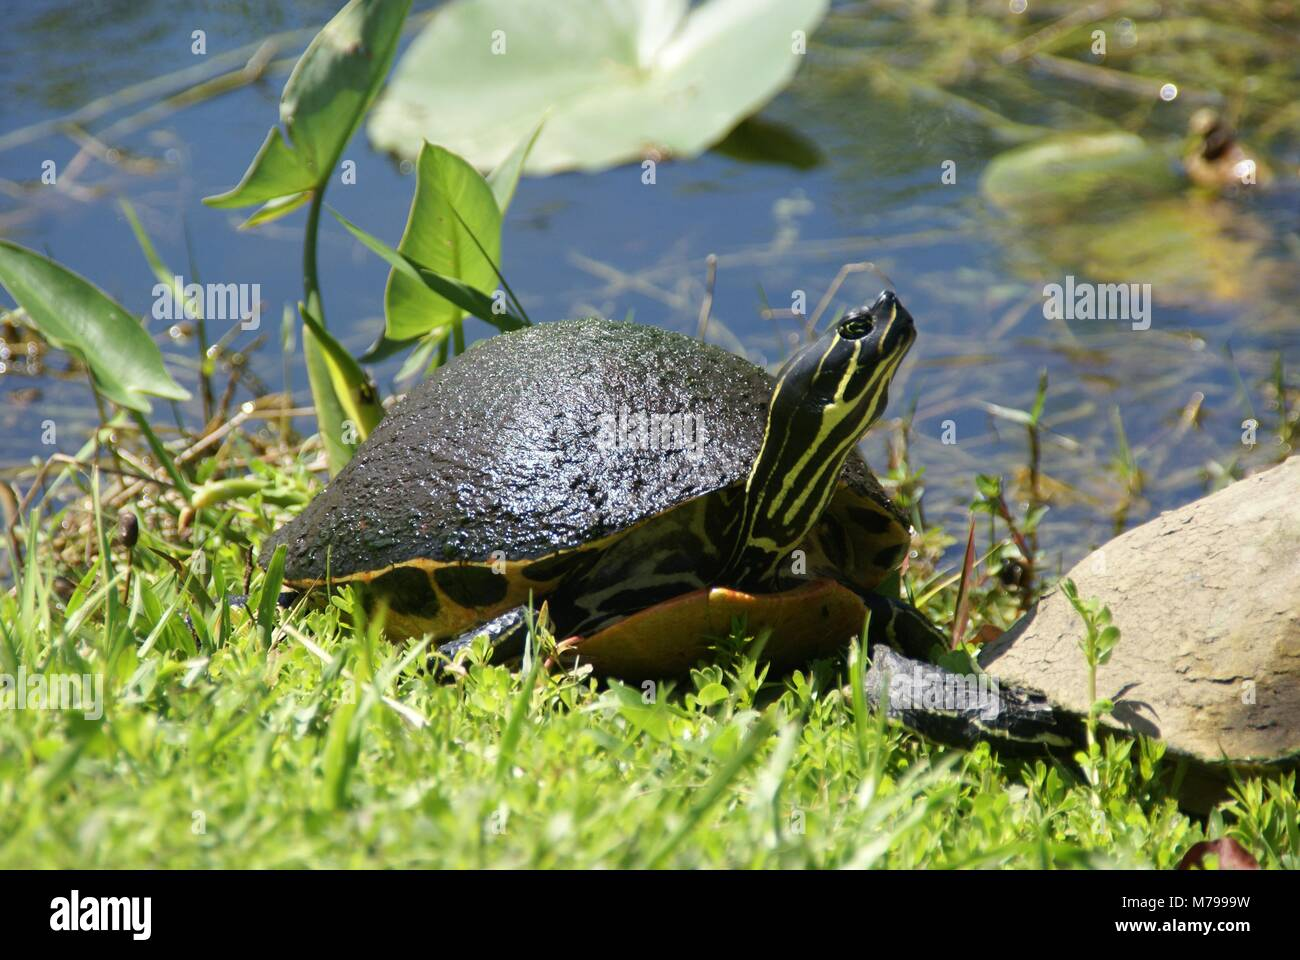 Florida red-bellied cooter or Florida redbelly turtle in everglades florida US Stock Photo